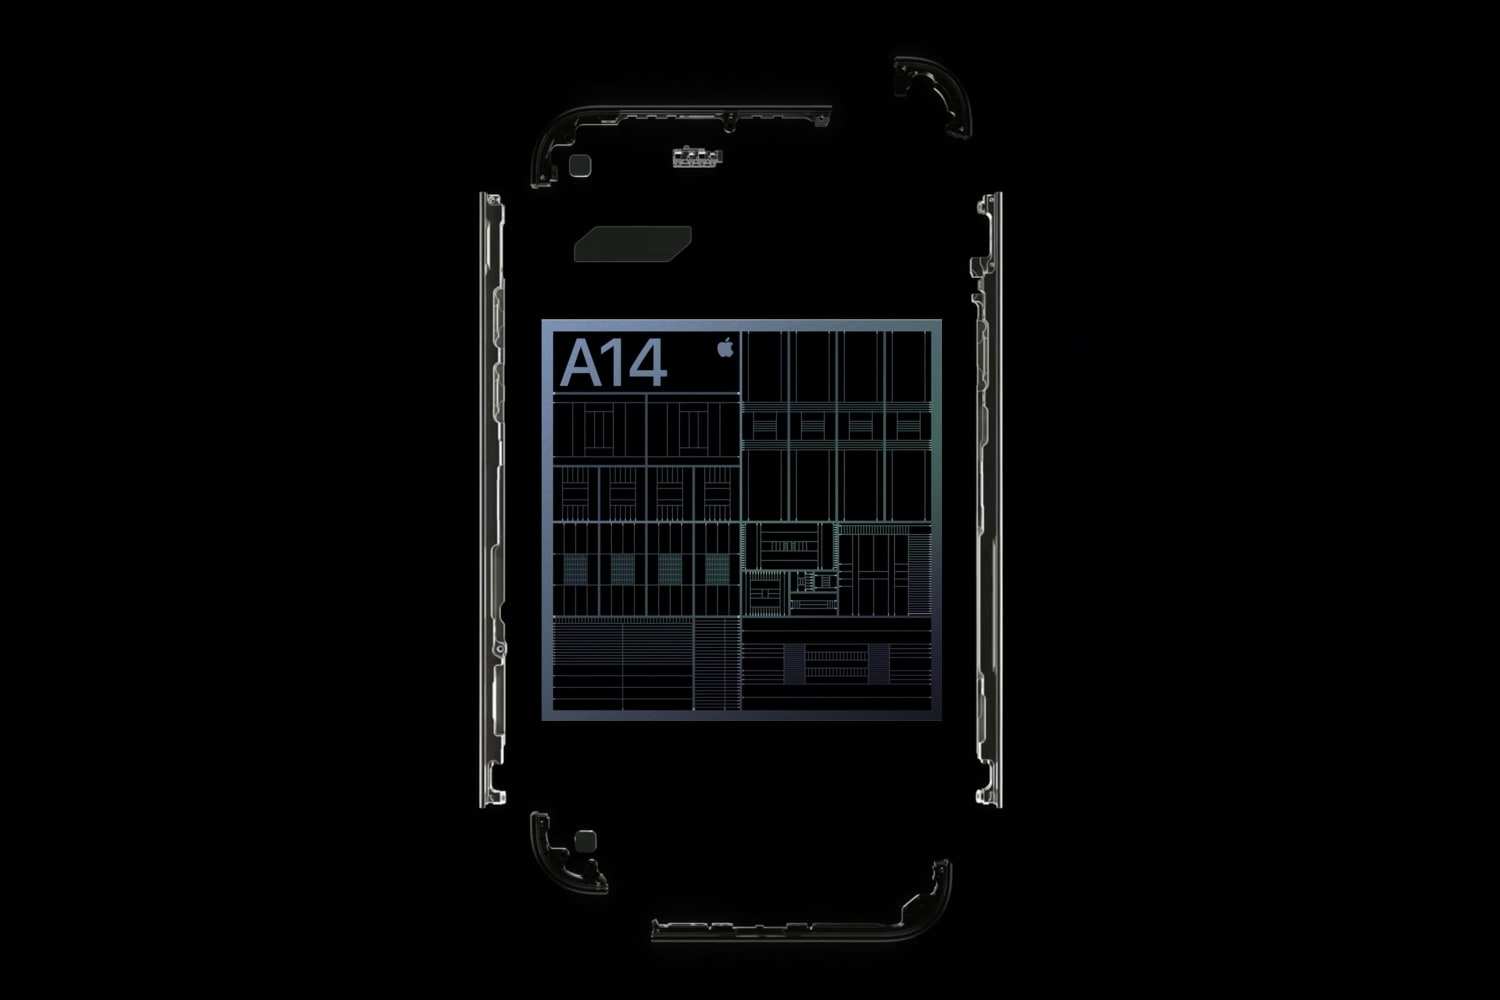 apple-expected-to-build-a15-on-5nm-a16-on-4nm-process-nodes-20201123-1